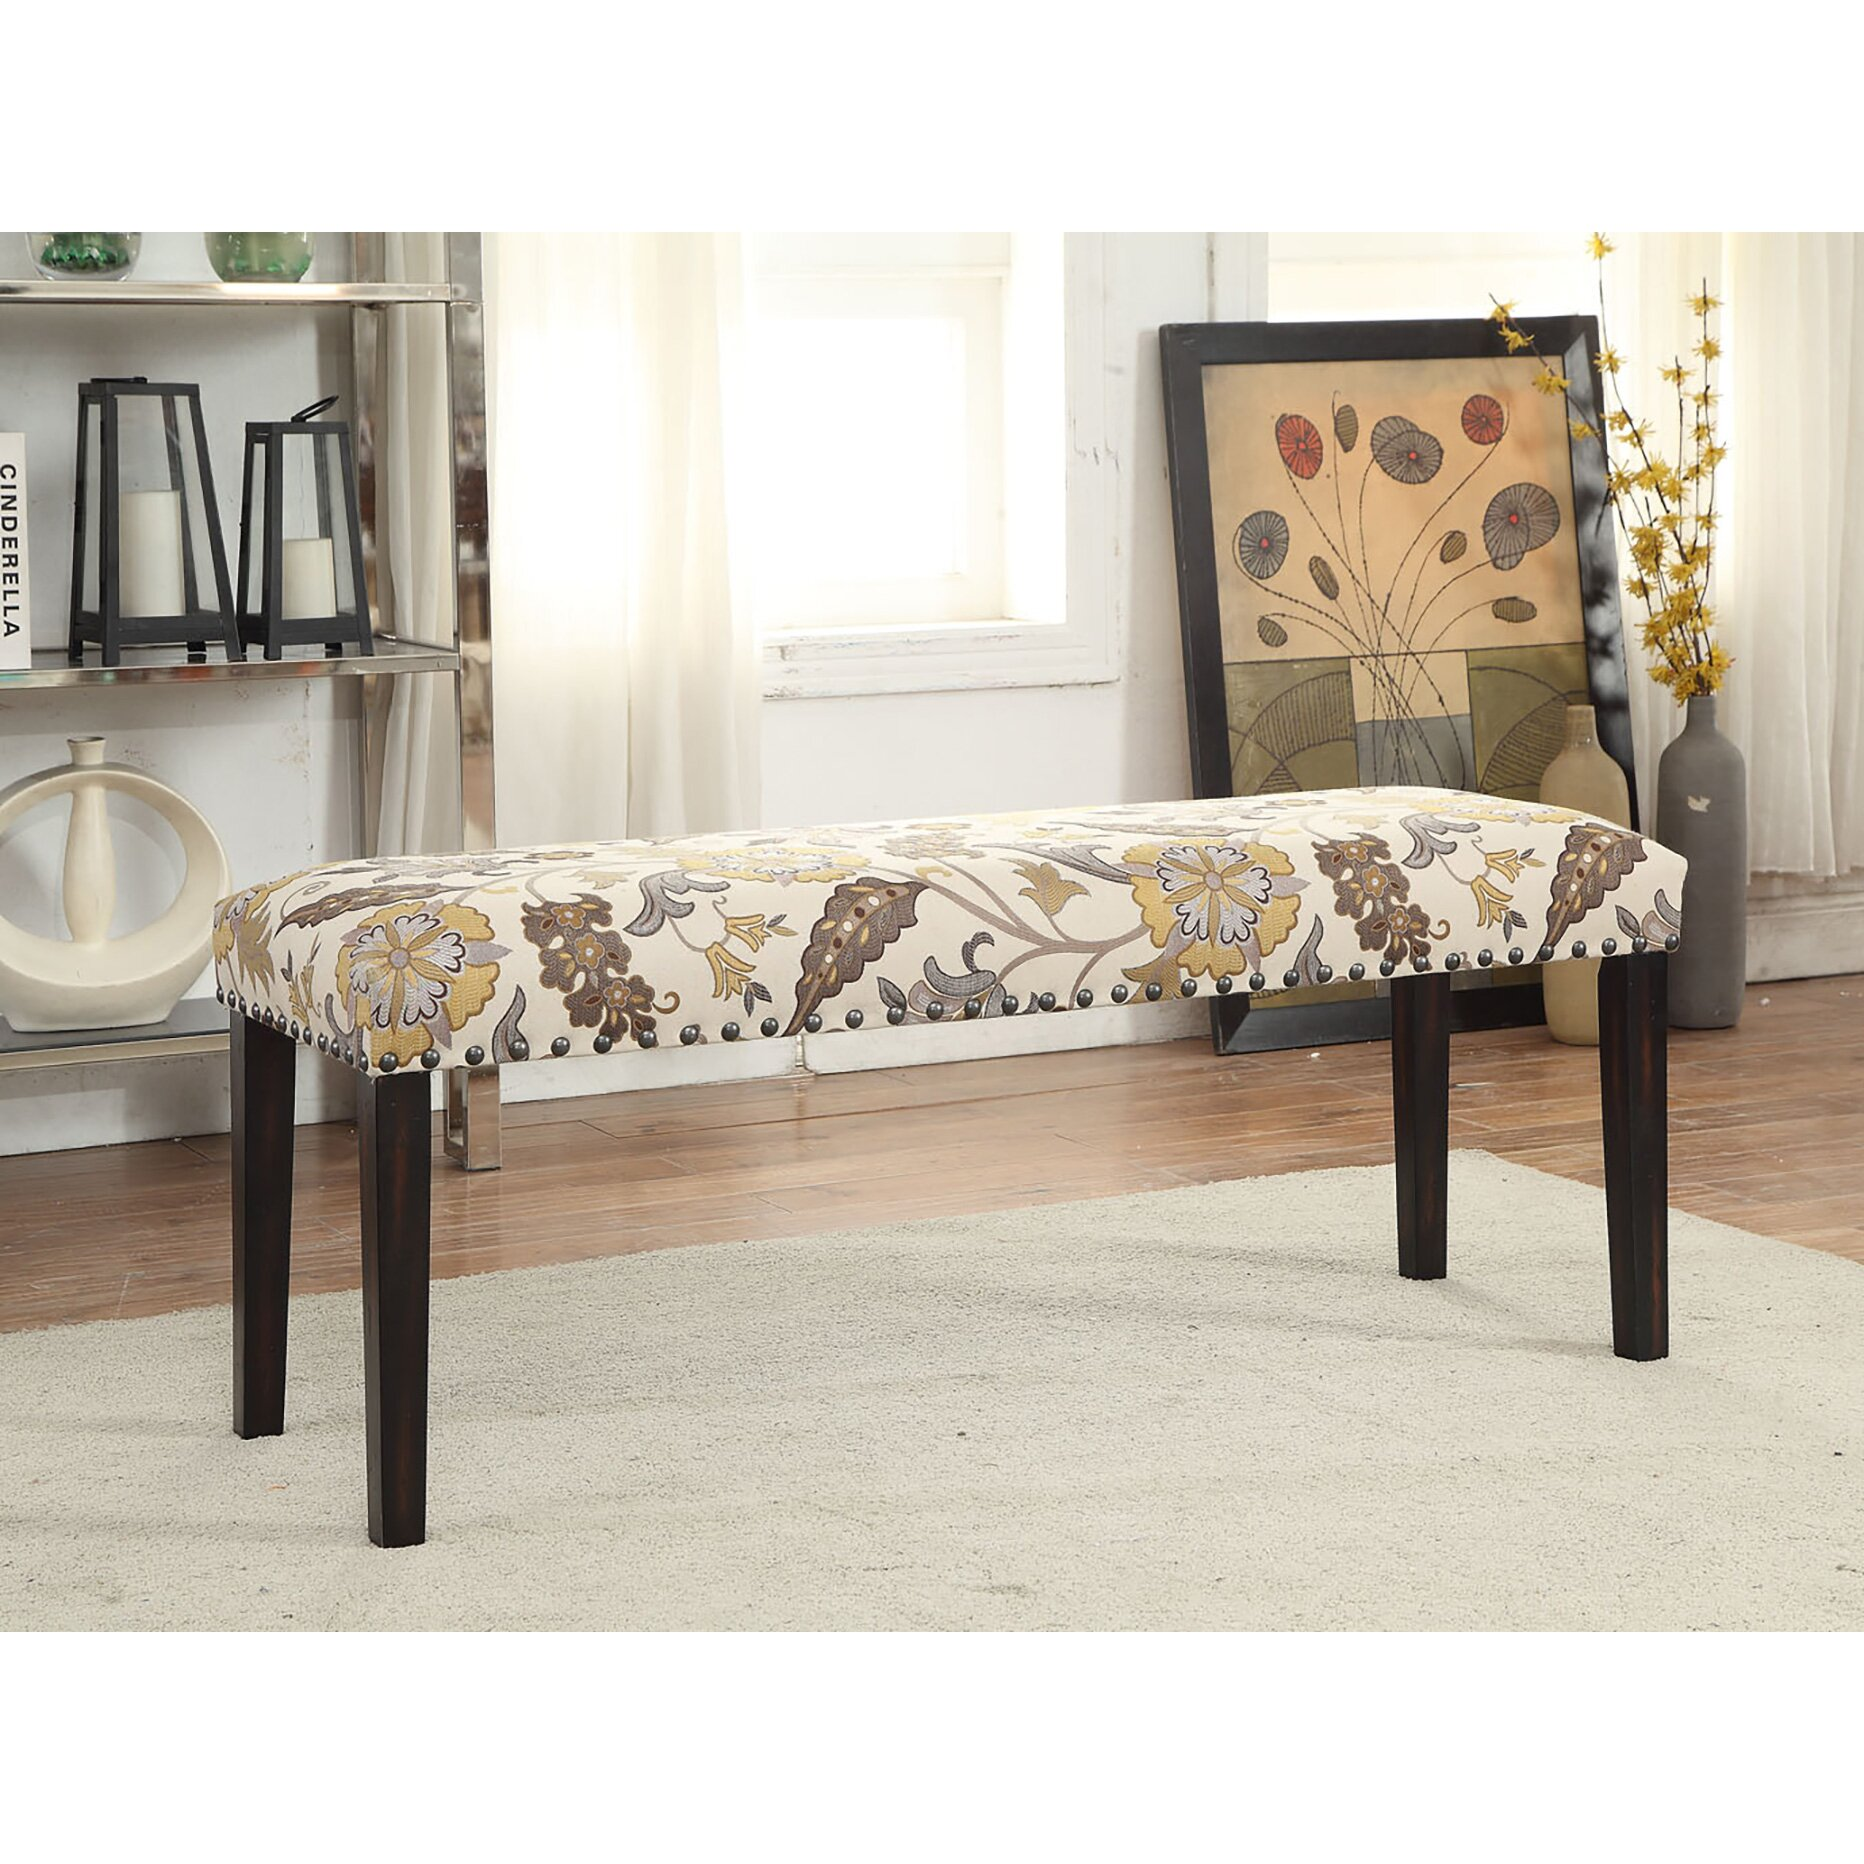 Wildon Home Upholstered Storage Bedroom Bench: Wildon Home ® Upholstered Entryway Bench